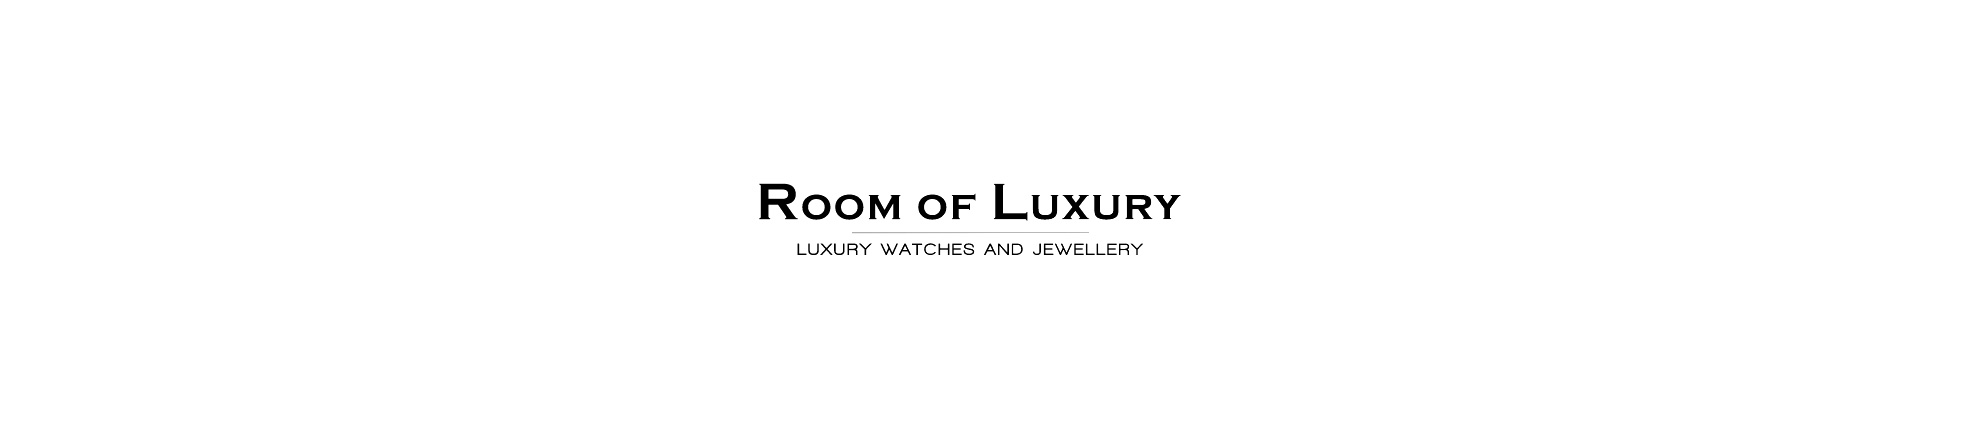 room-of-luxury-2